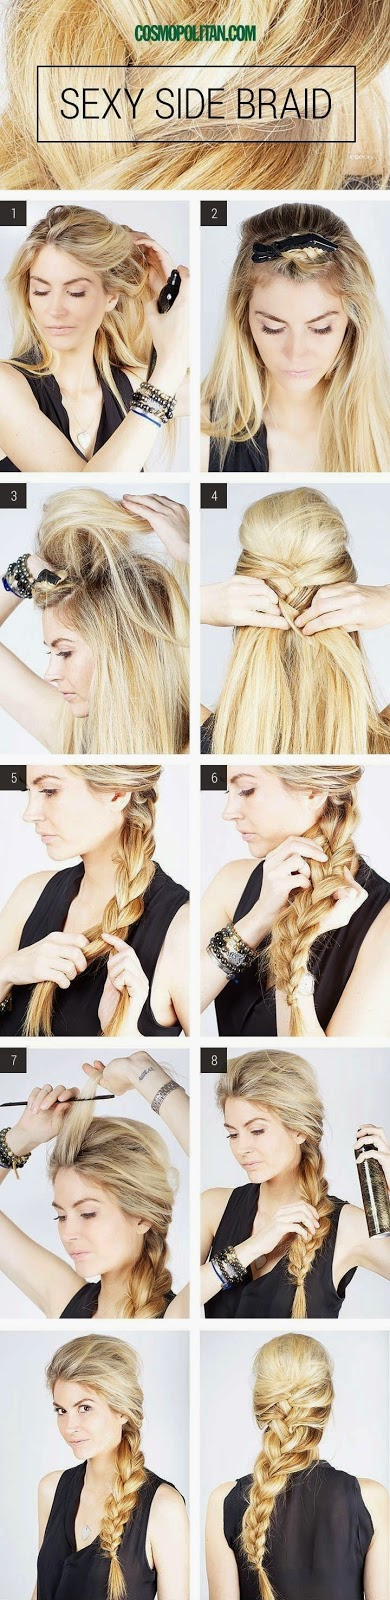 Top 5 Braided Hairstyles